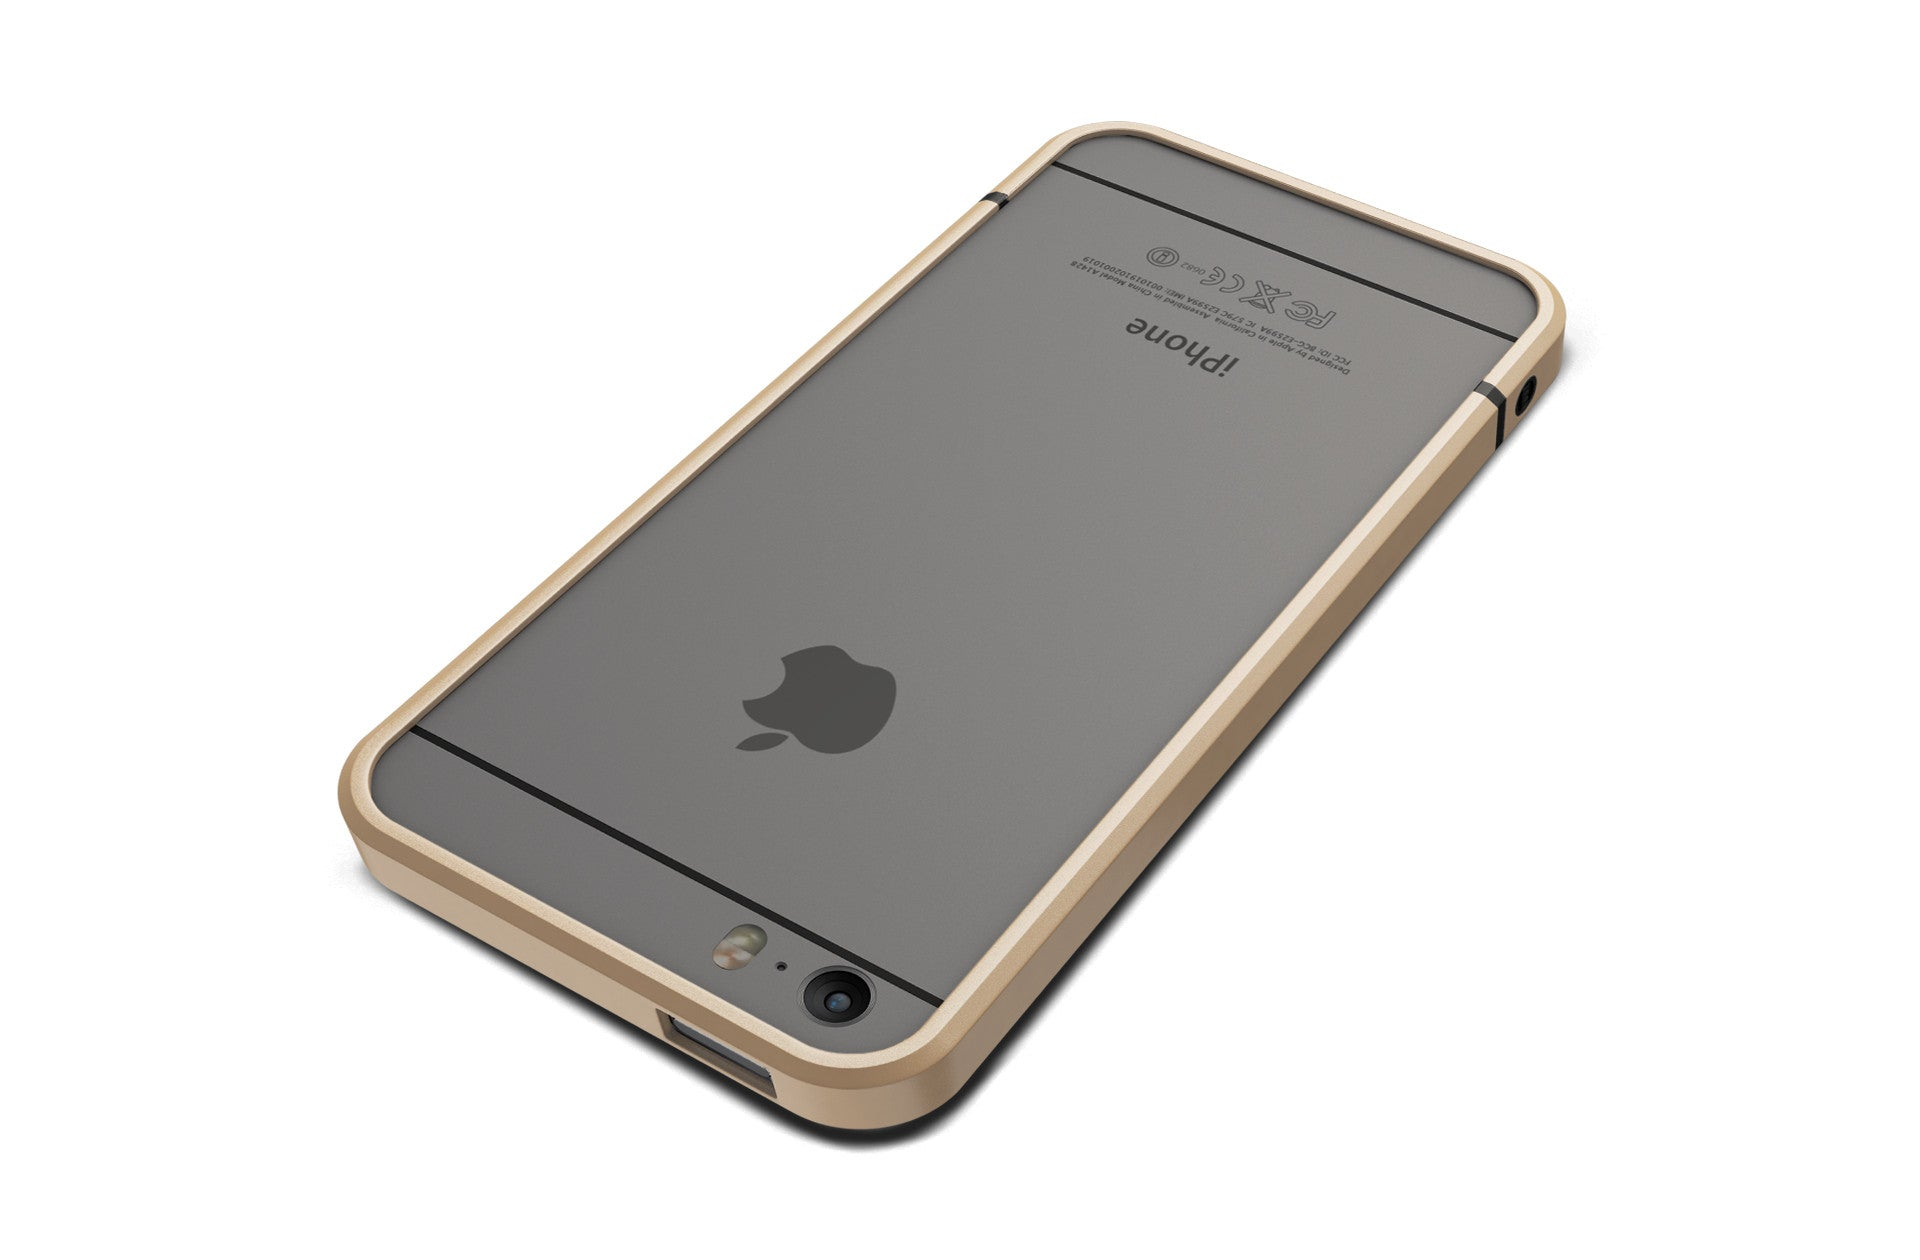 AL13 v2 AeroSpace Aluminum Bumper with no Signal Loss for iPhone 5/5s and iPhone SE